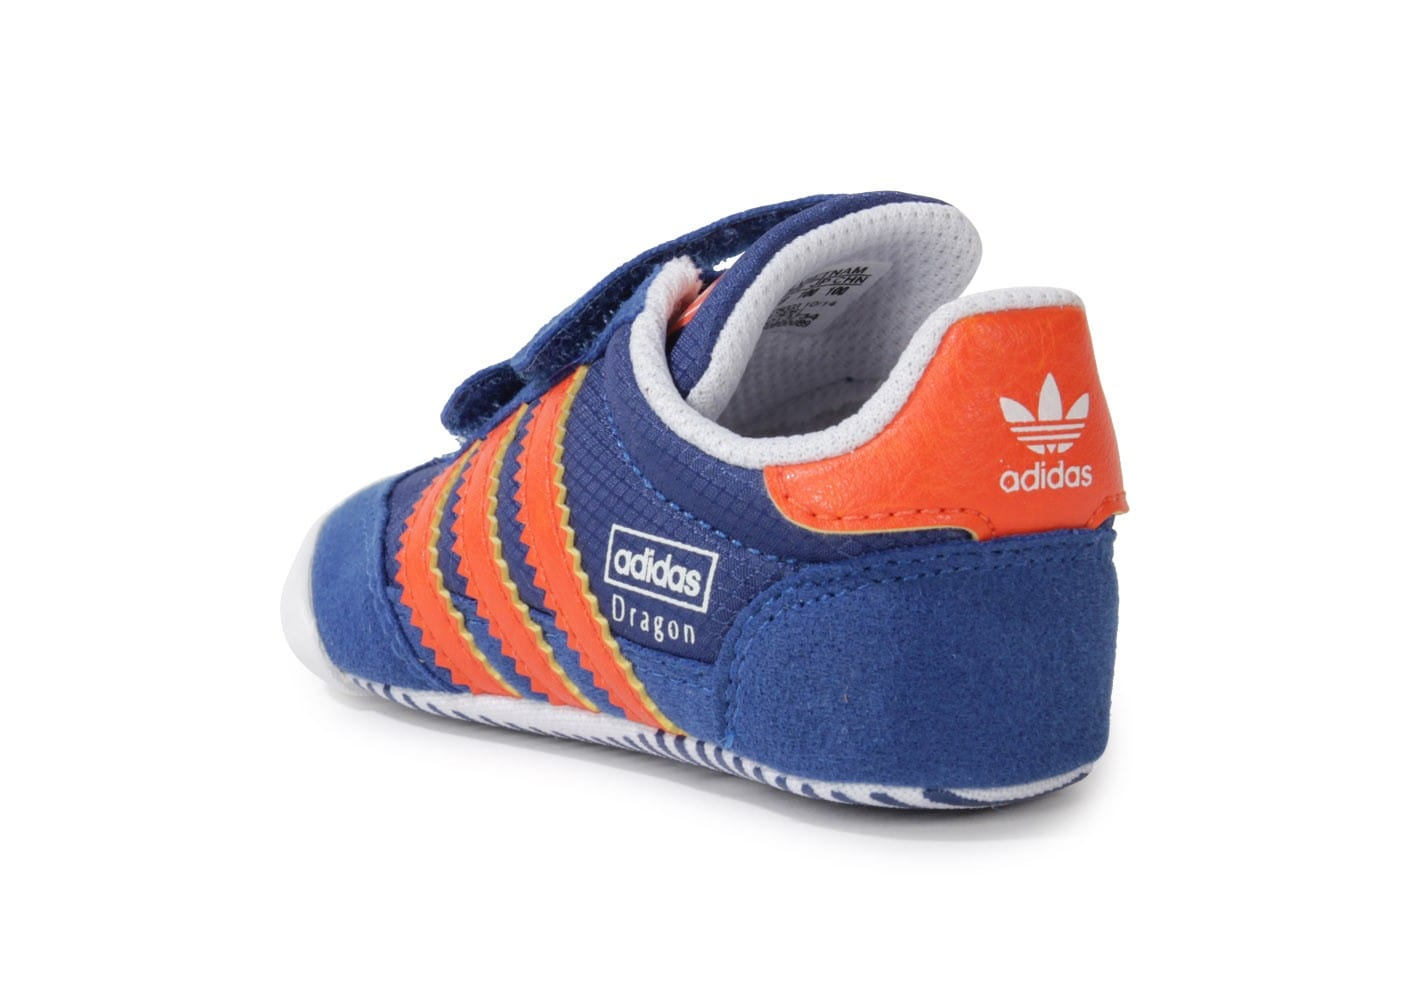 adidas dragon bleu orange